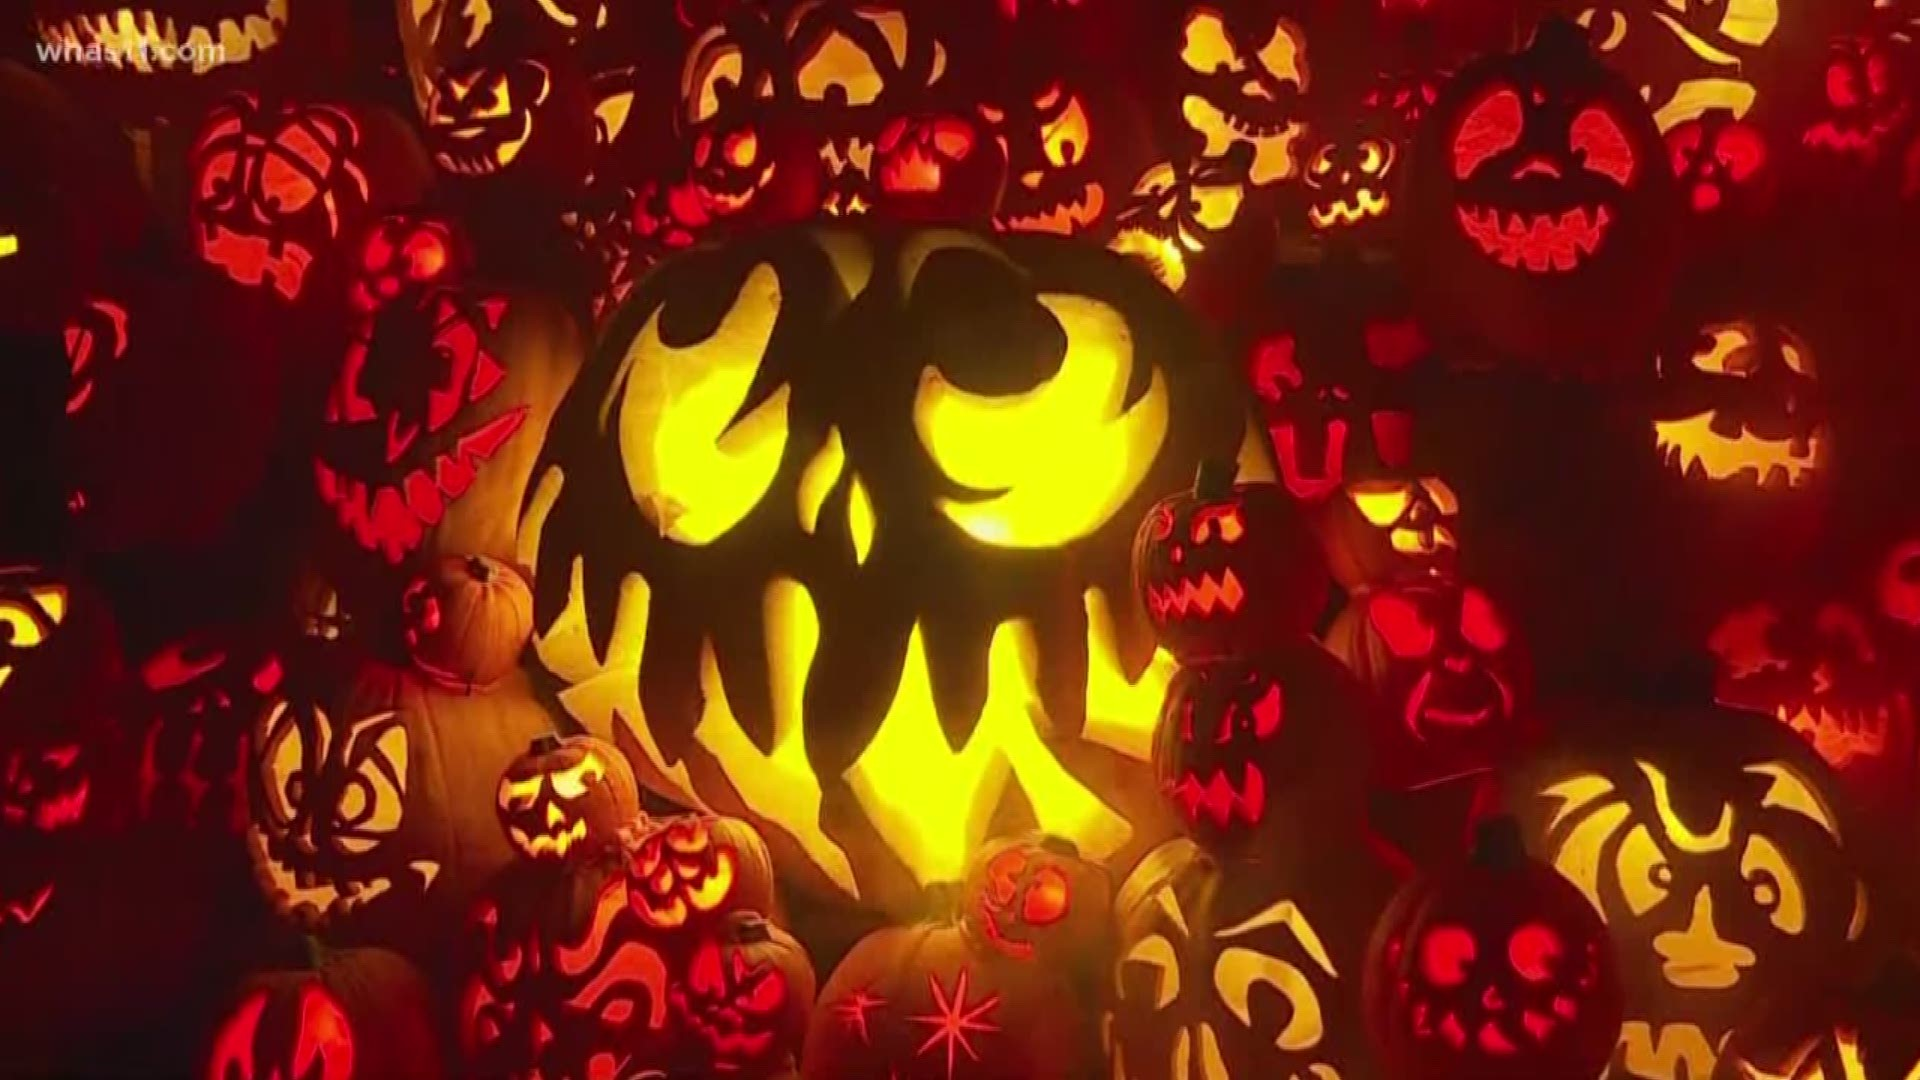 Halloween 2020 In Louisville Ky Jack O'Lantern Spectacular is back for 2020   whas11.com